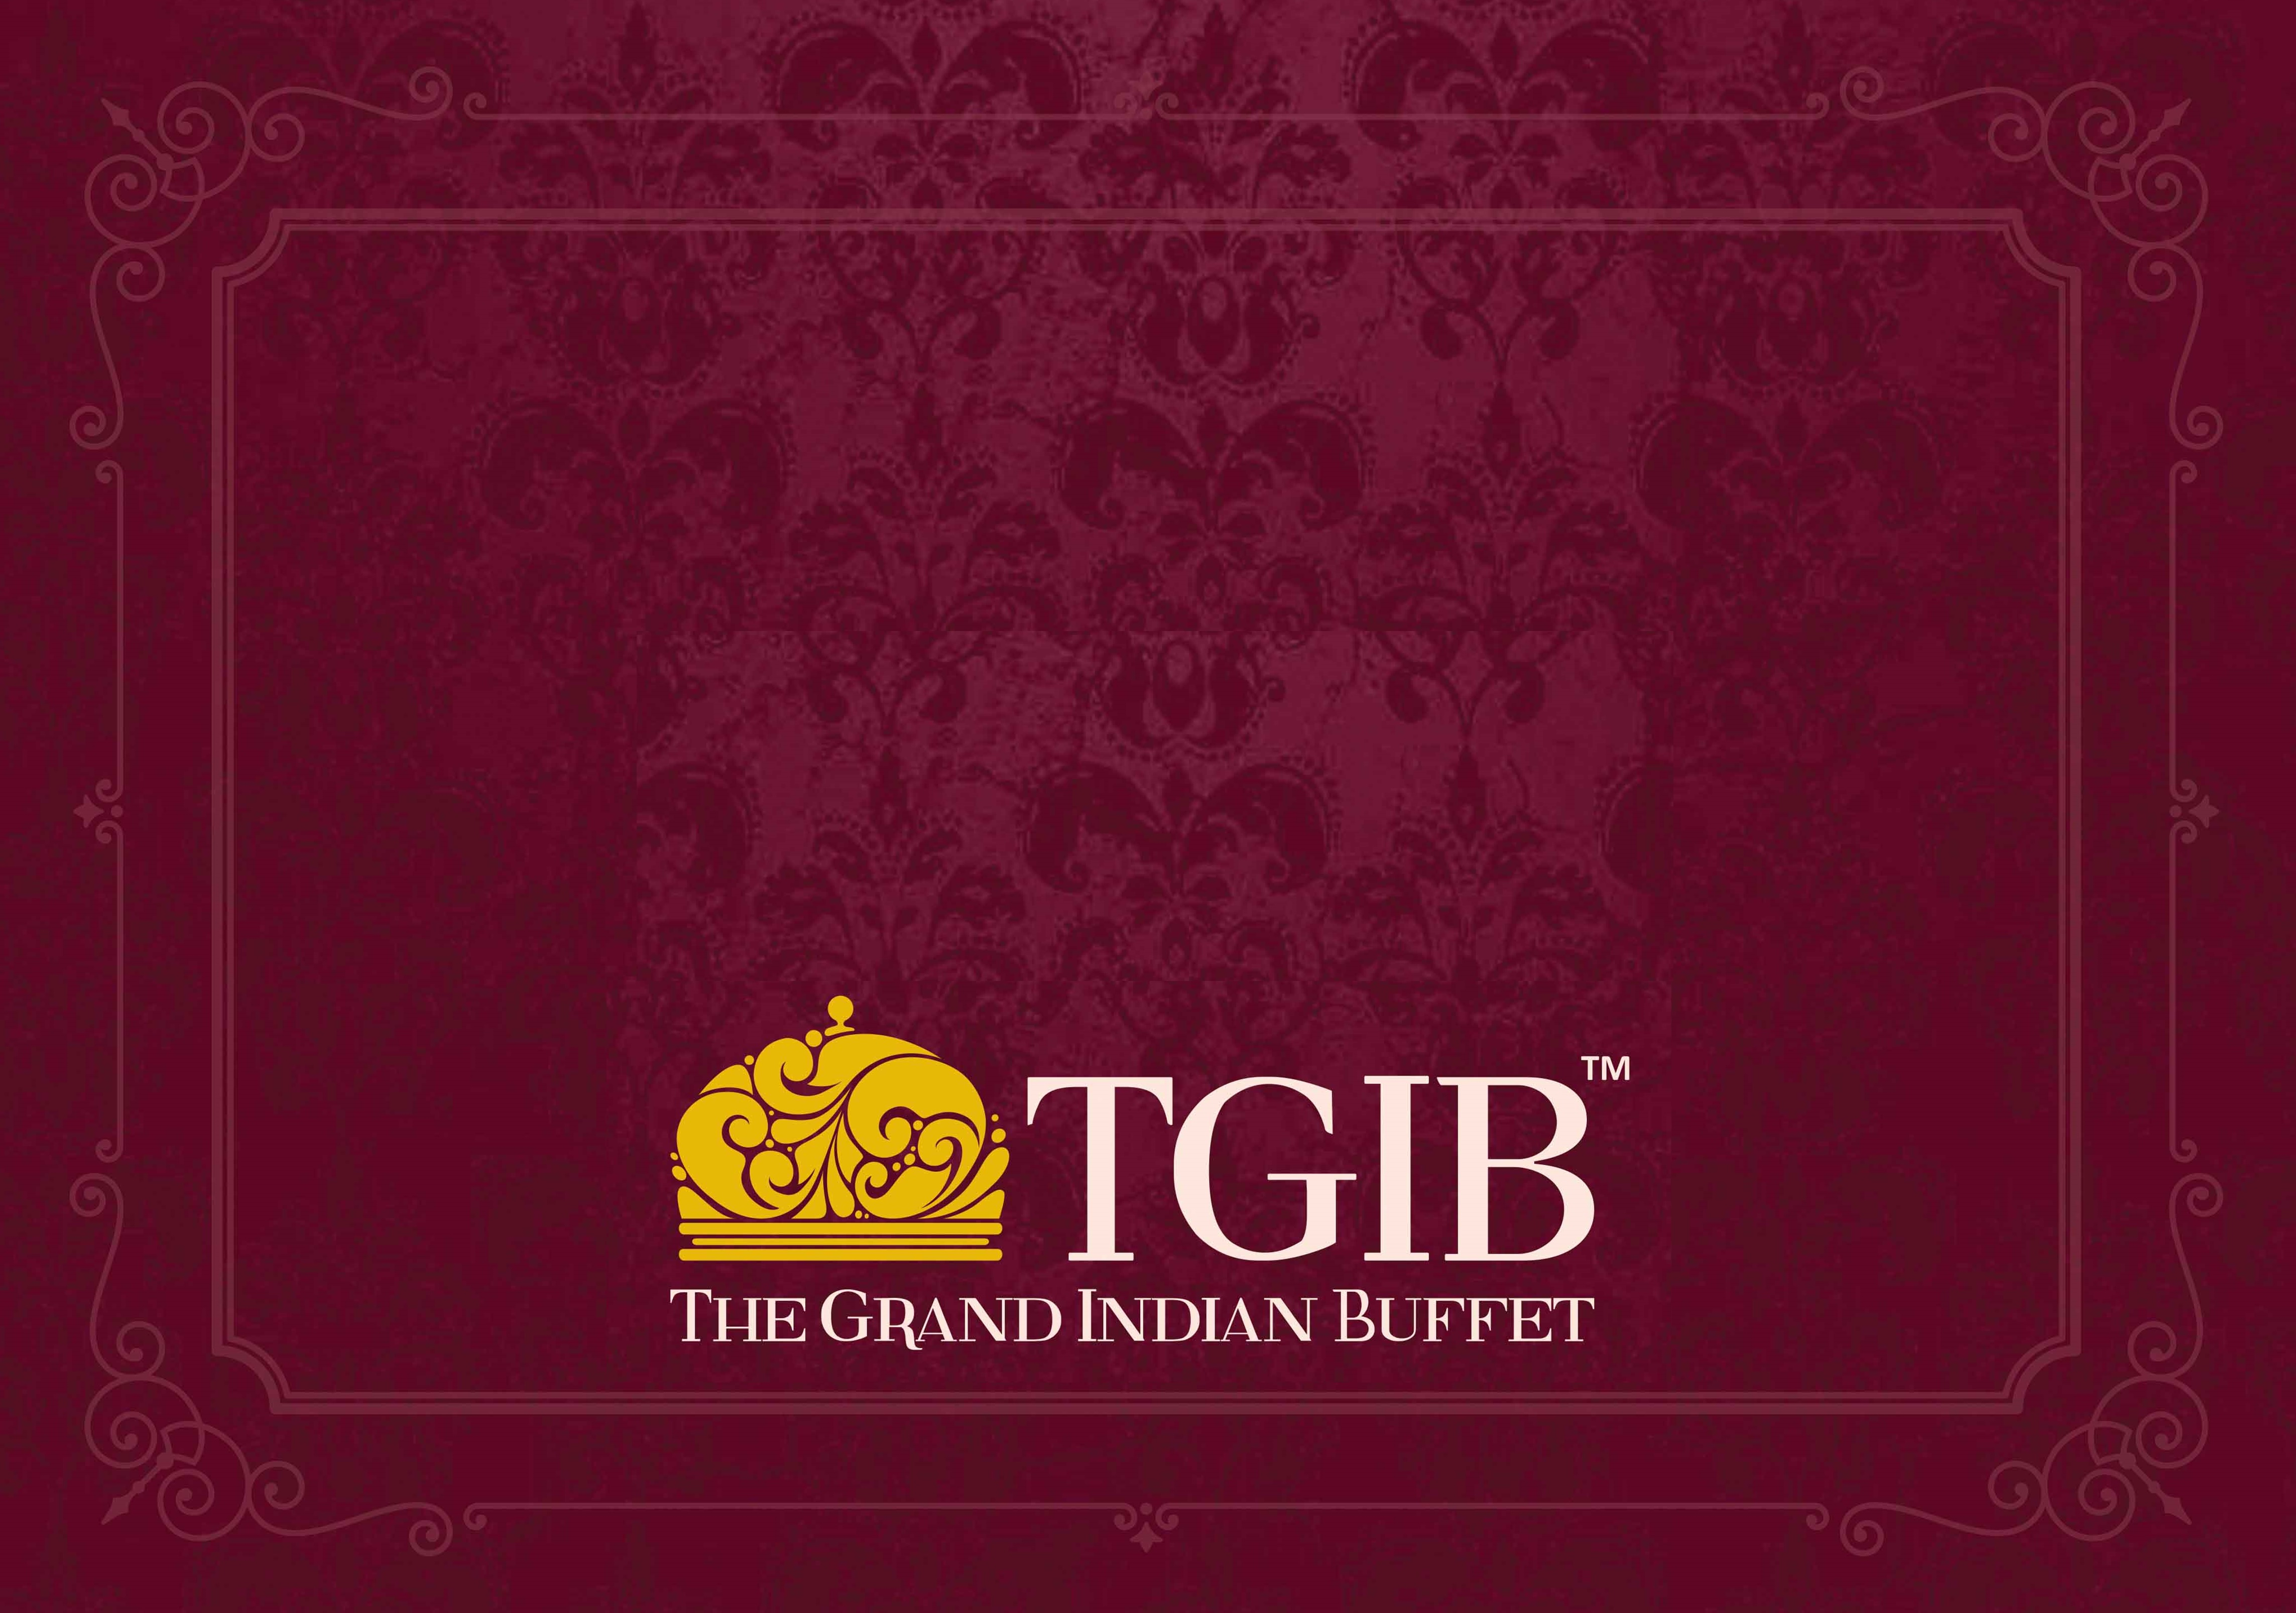 The Grand Indian Buffet (Tgib) logo